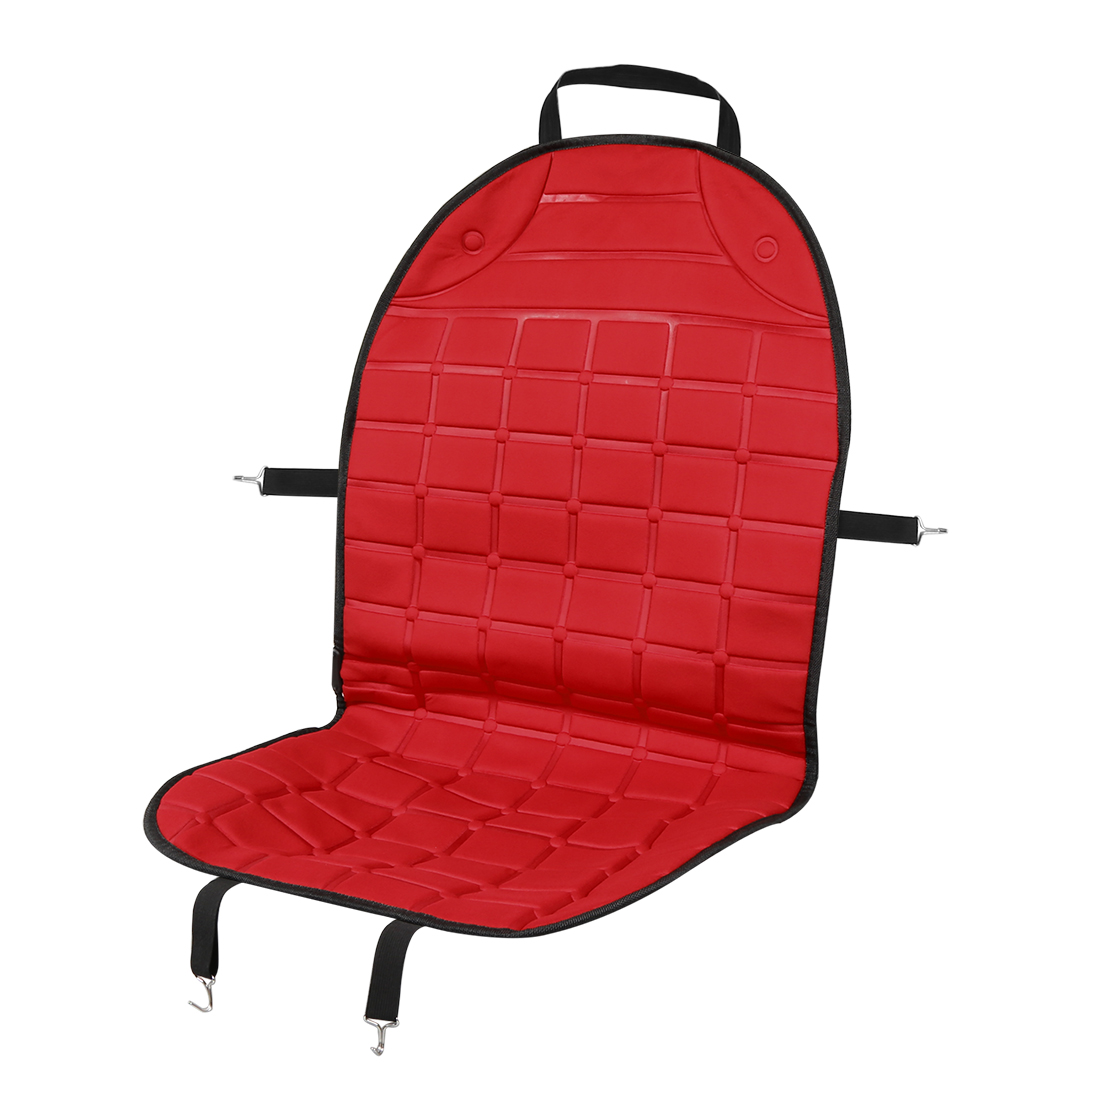 Universal DC 12V Heated Car Front Seat Heating Chair Cushion Warmer Pad Red